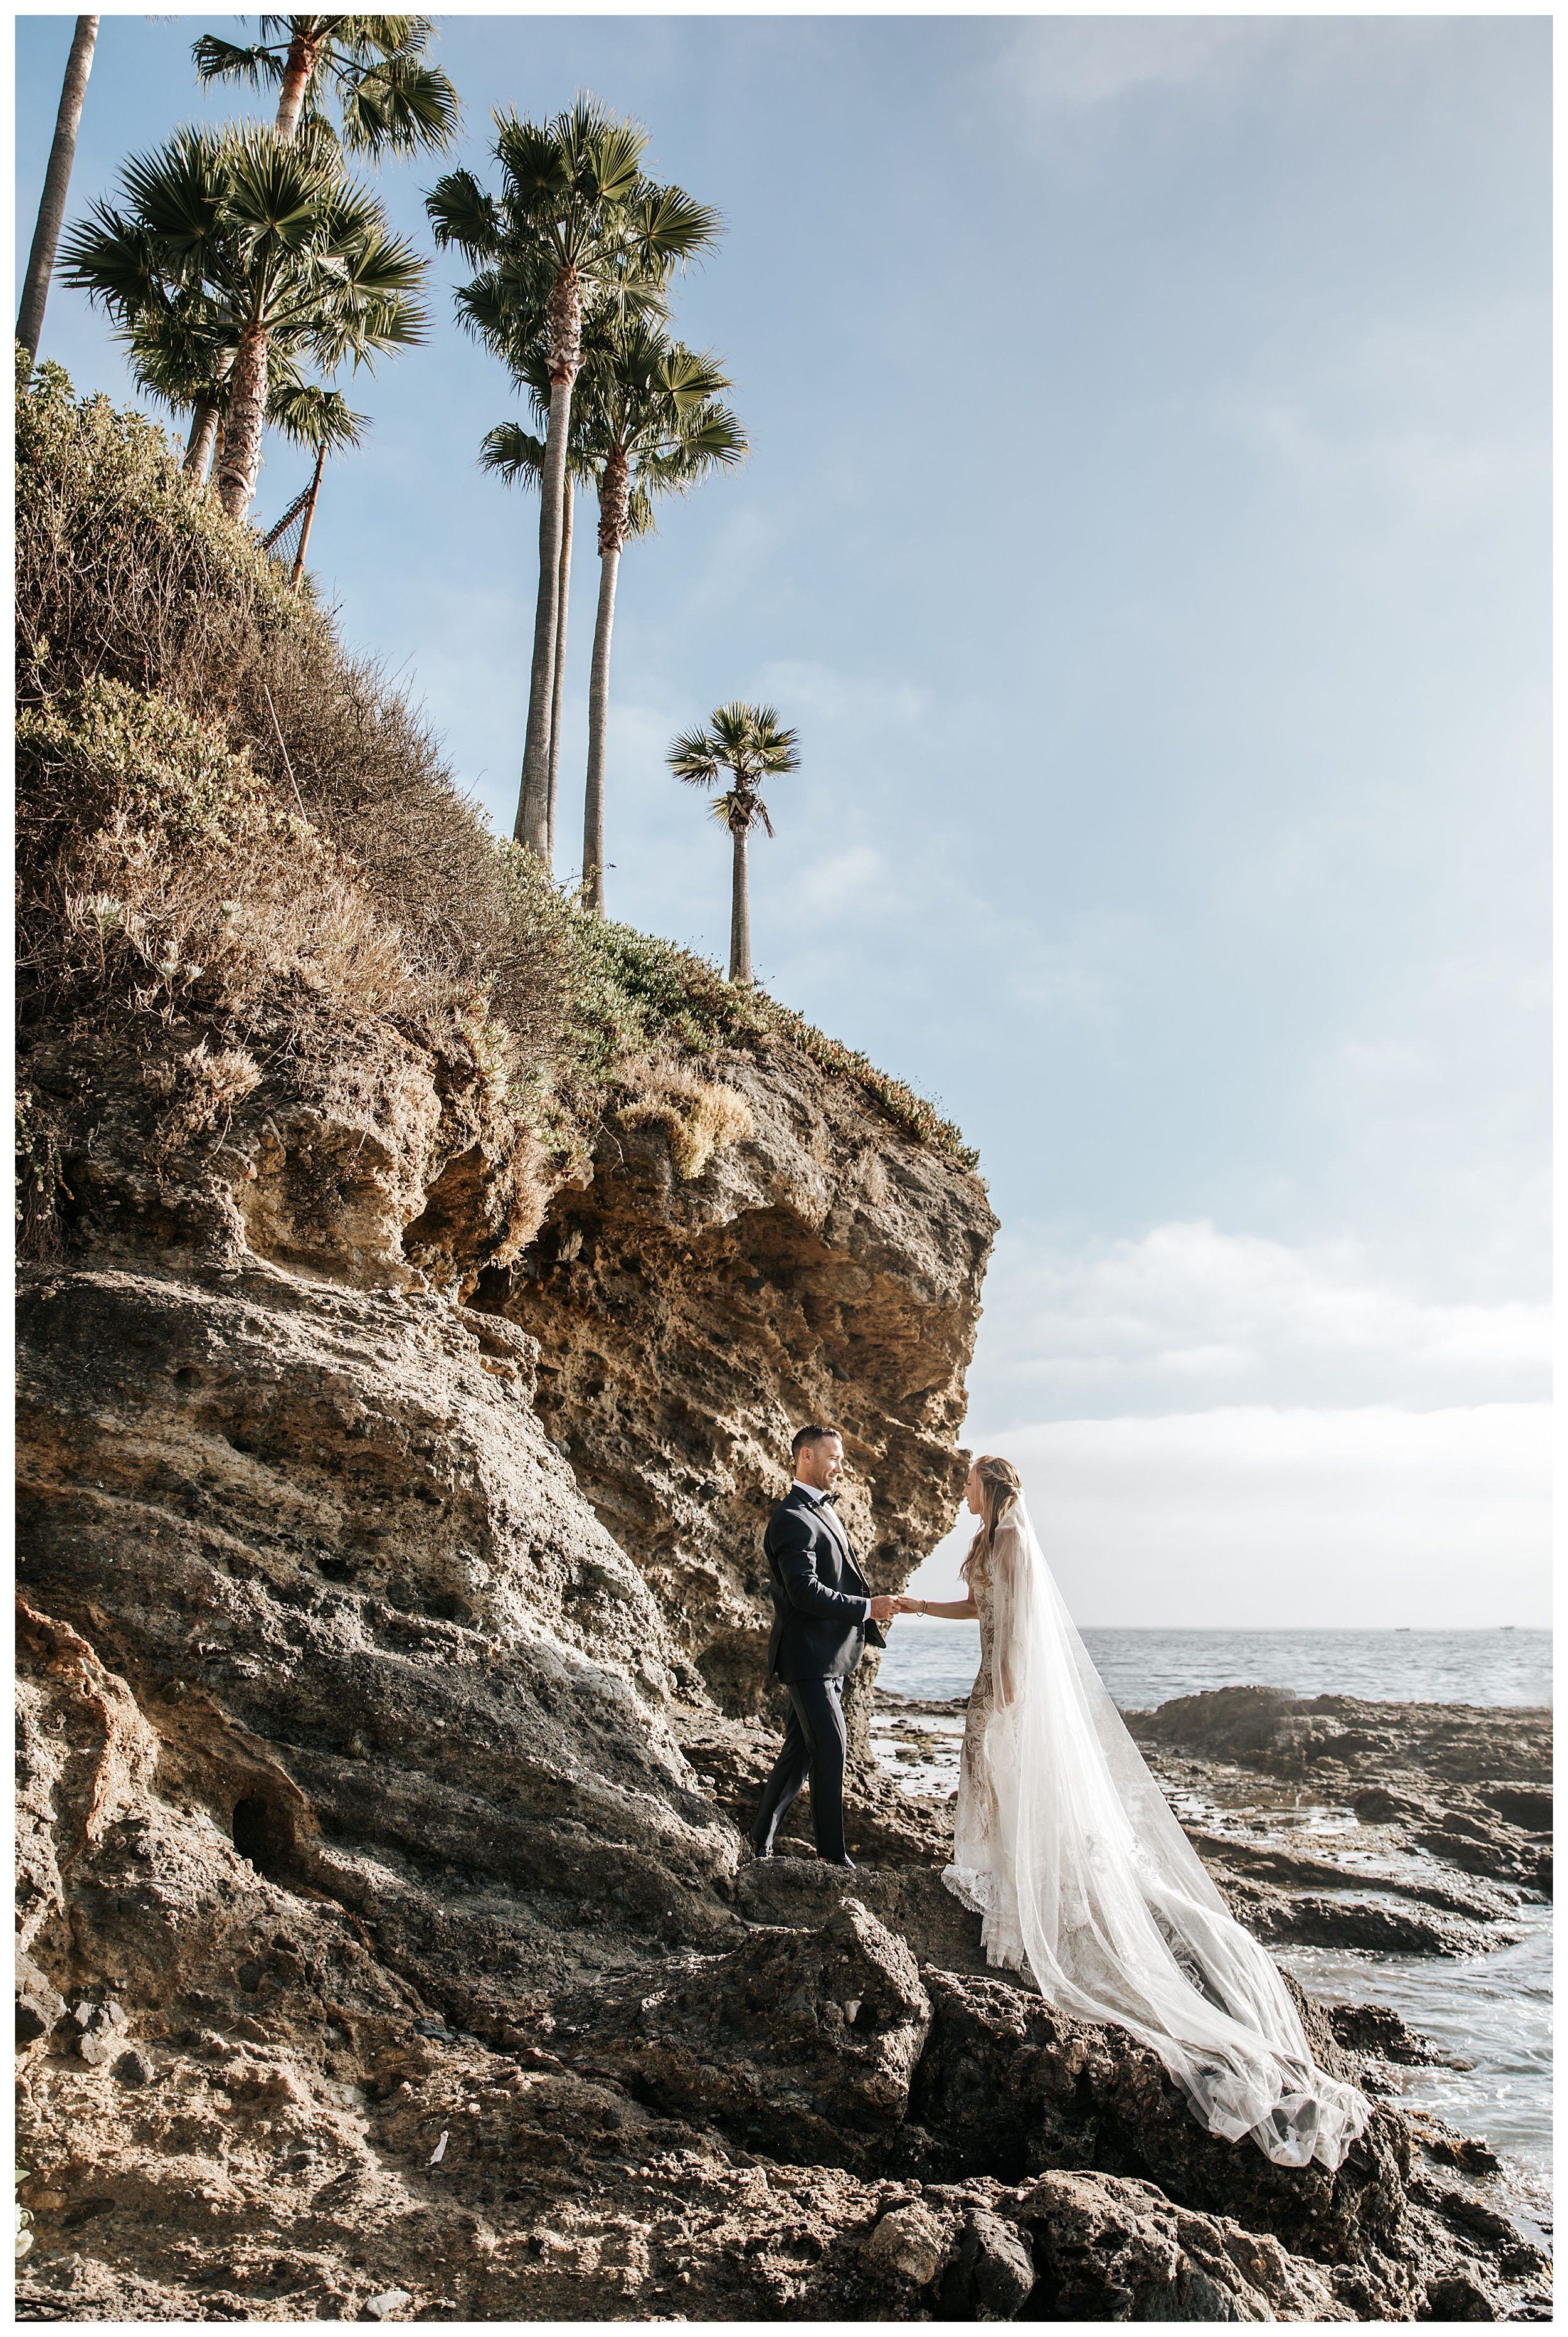 adventure elopement inspiration, destination elopement inspiration, bride and groom on beach